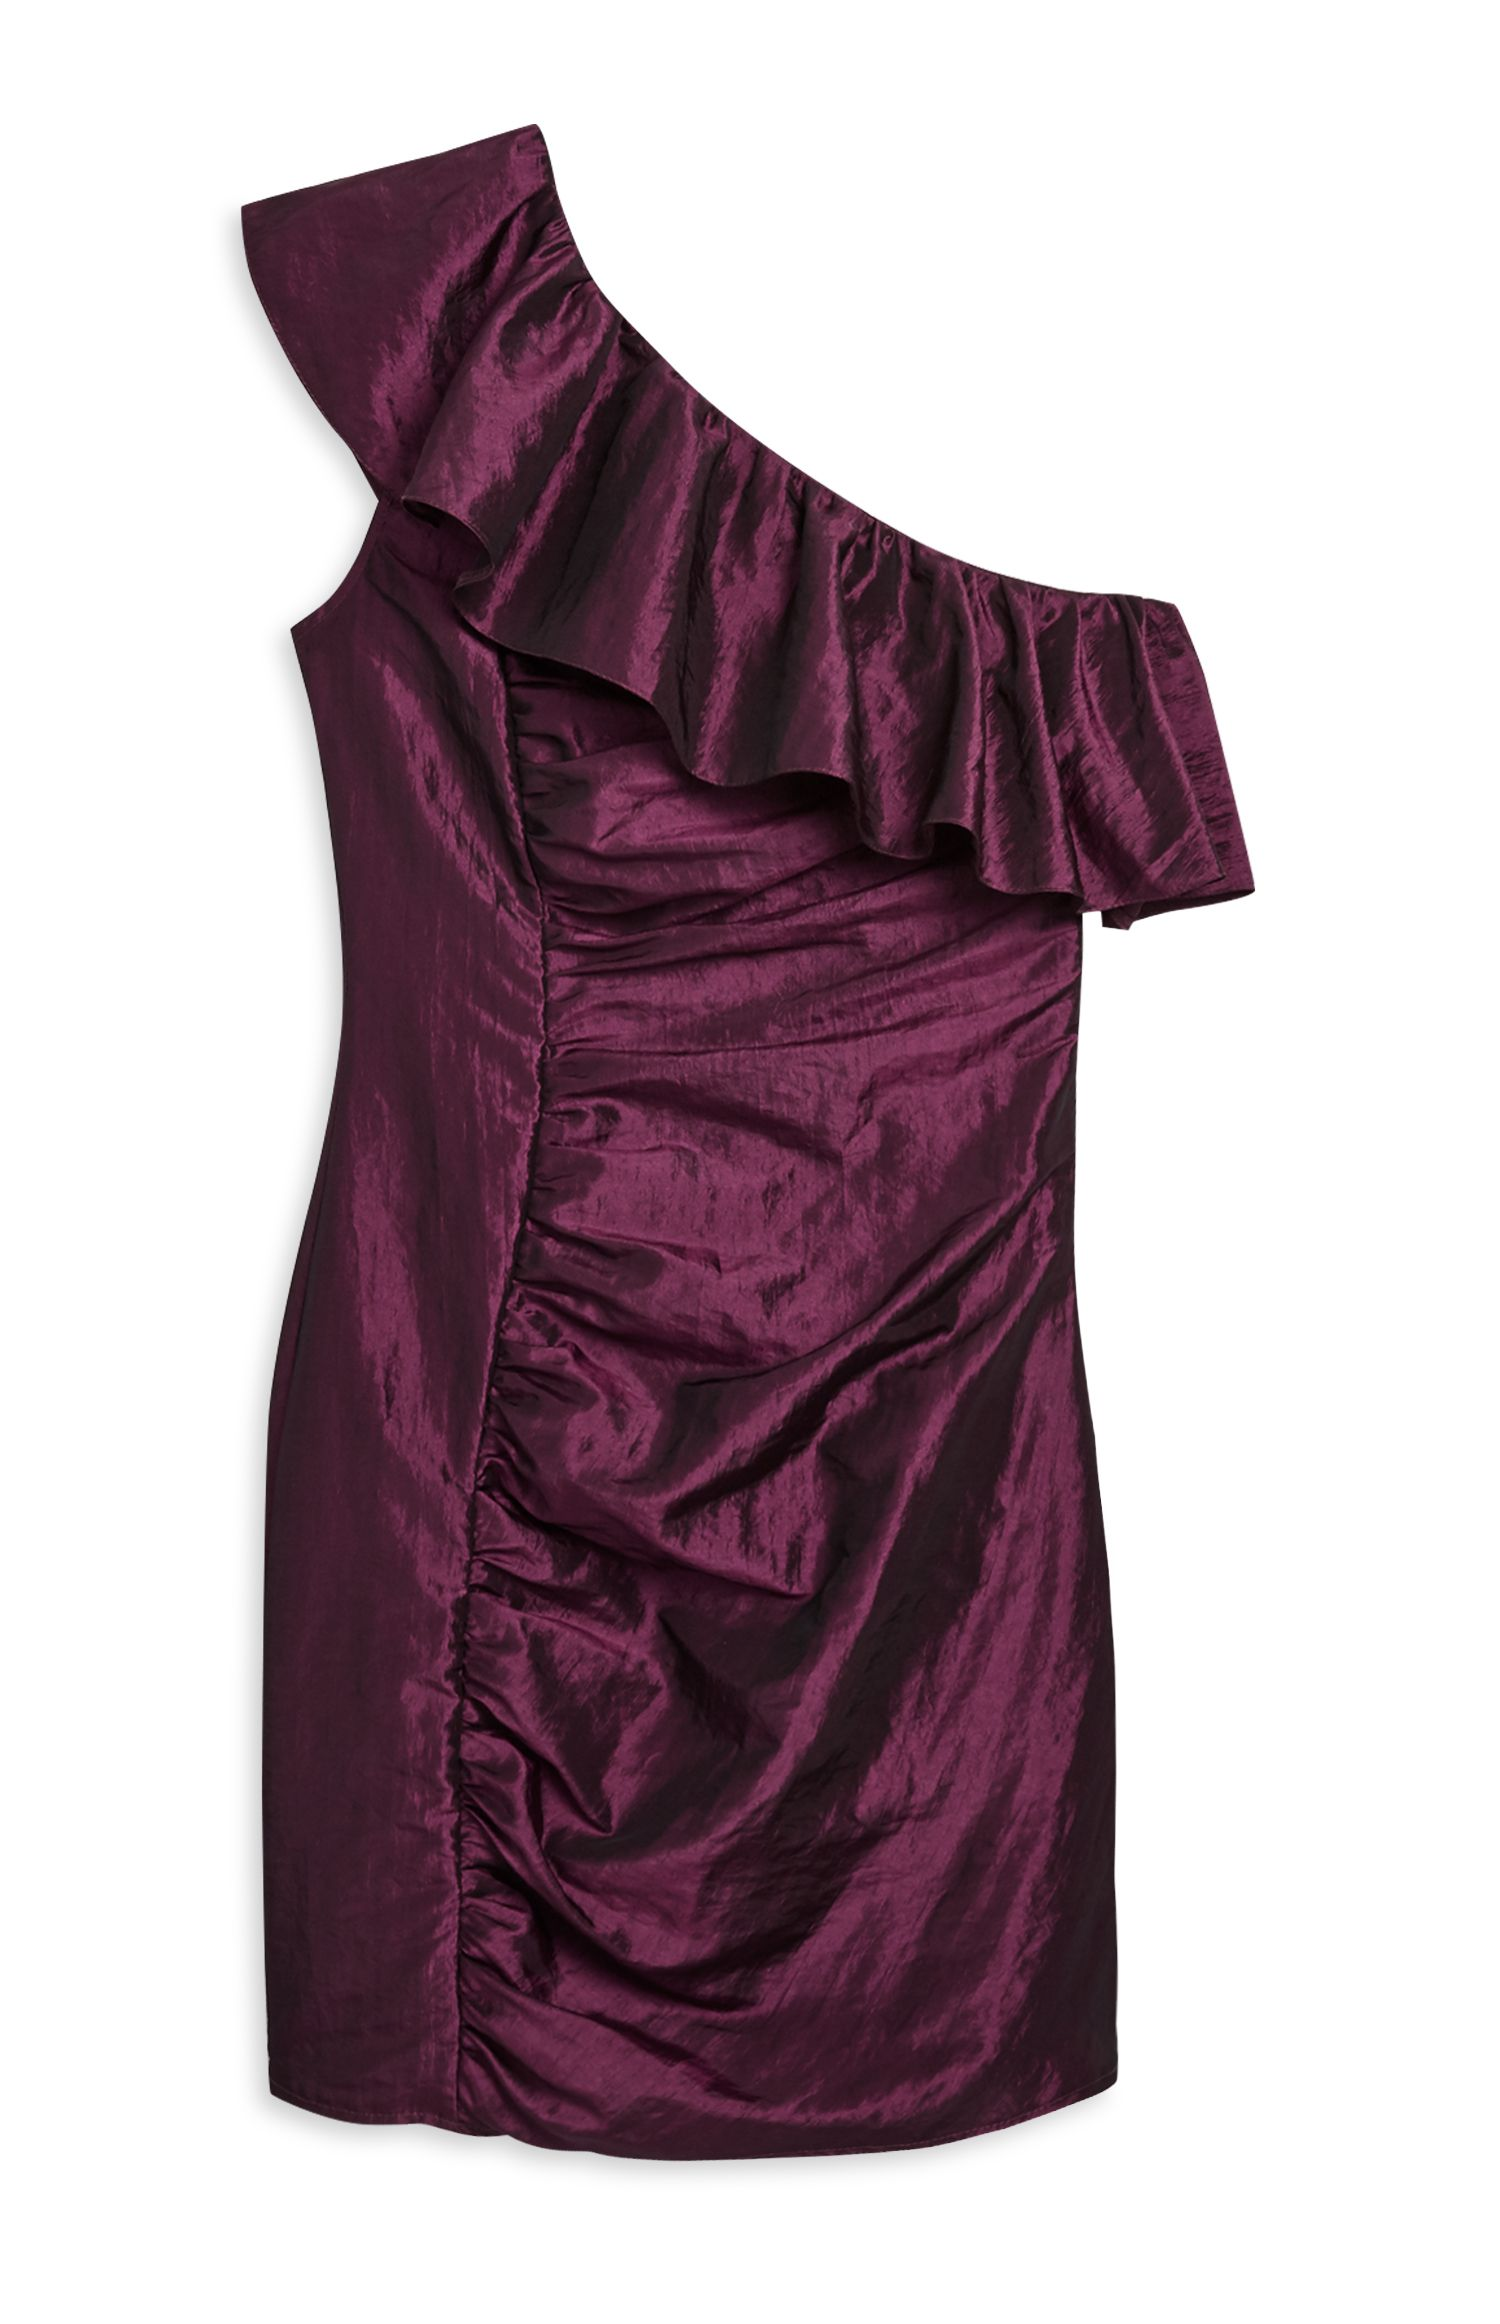 fe2a8083 13 Primark dresses for your next Christmas party